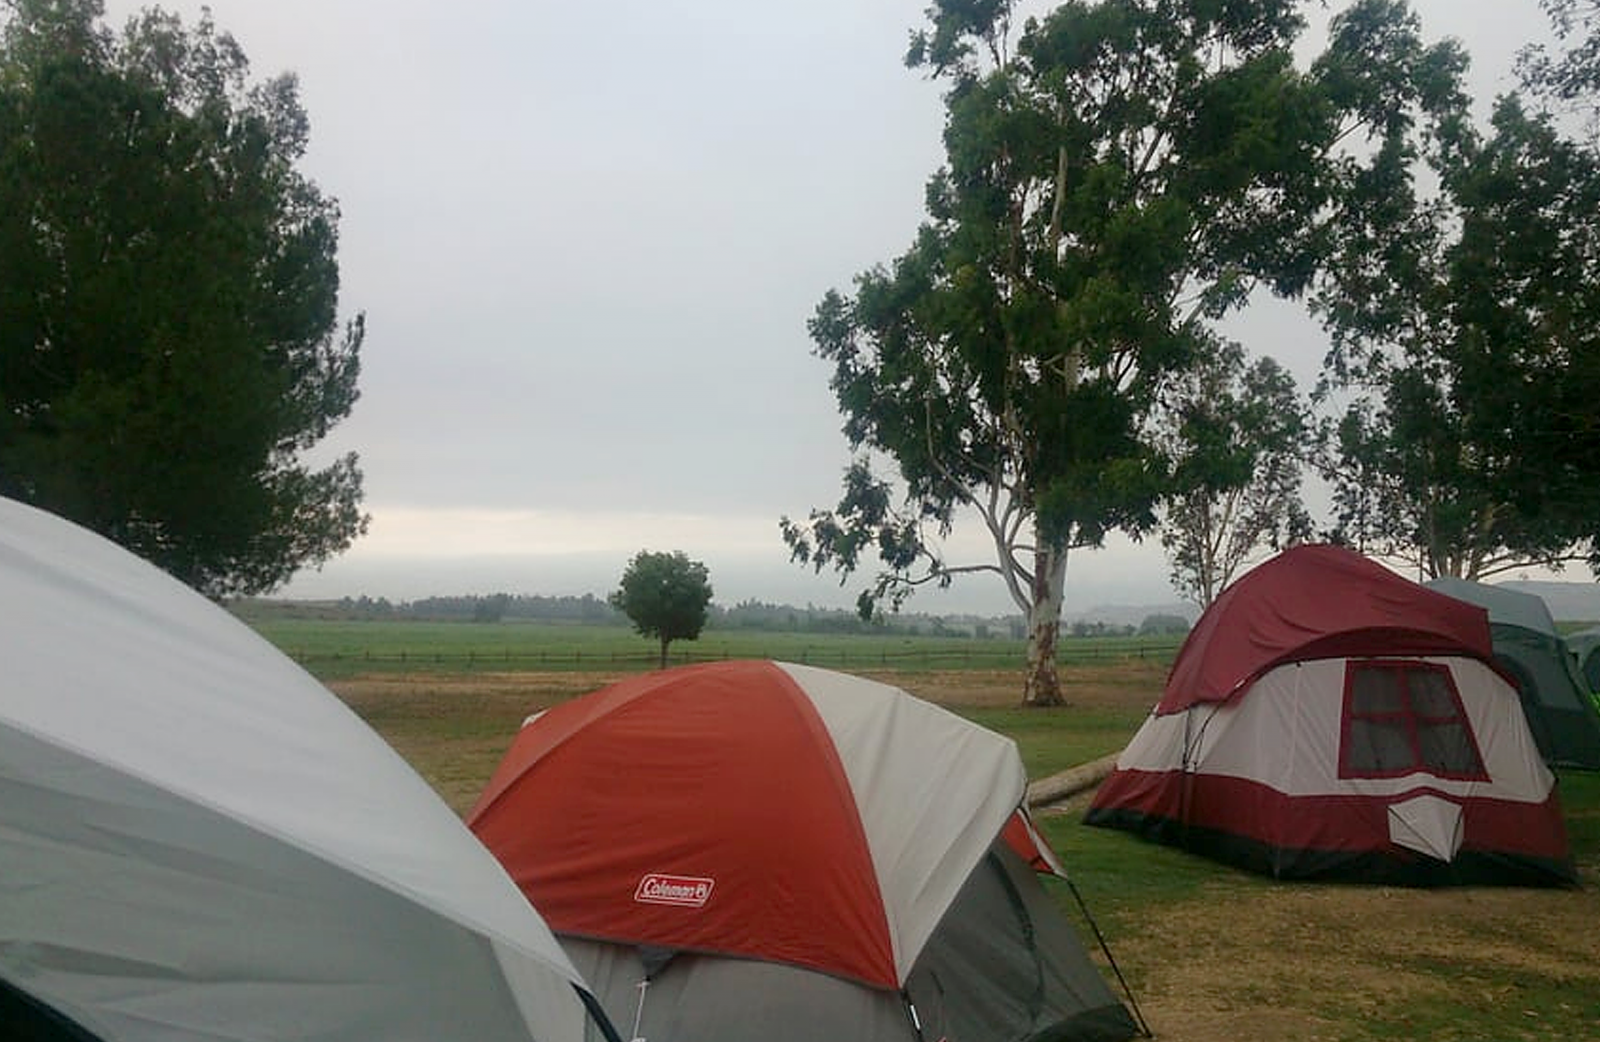 Several tents lined up on the grass at Prado park.